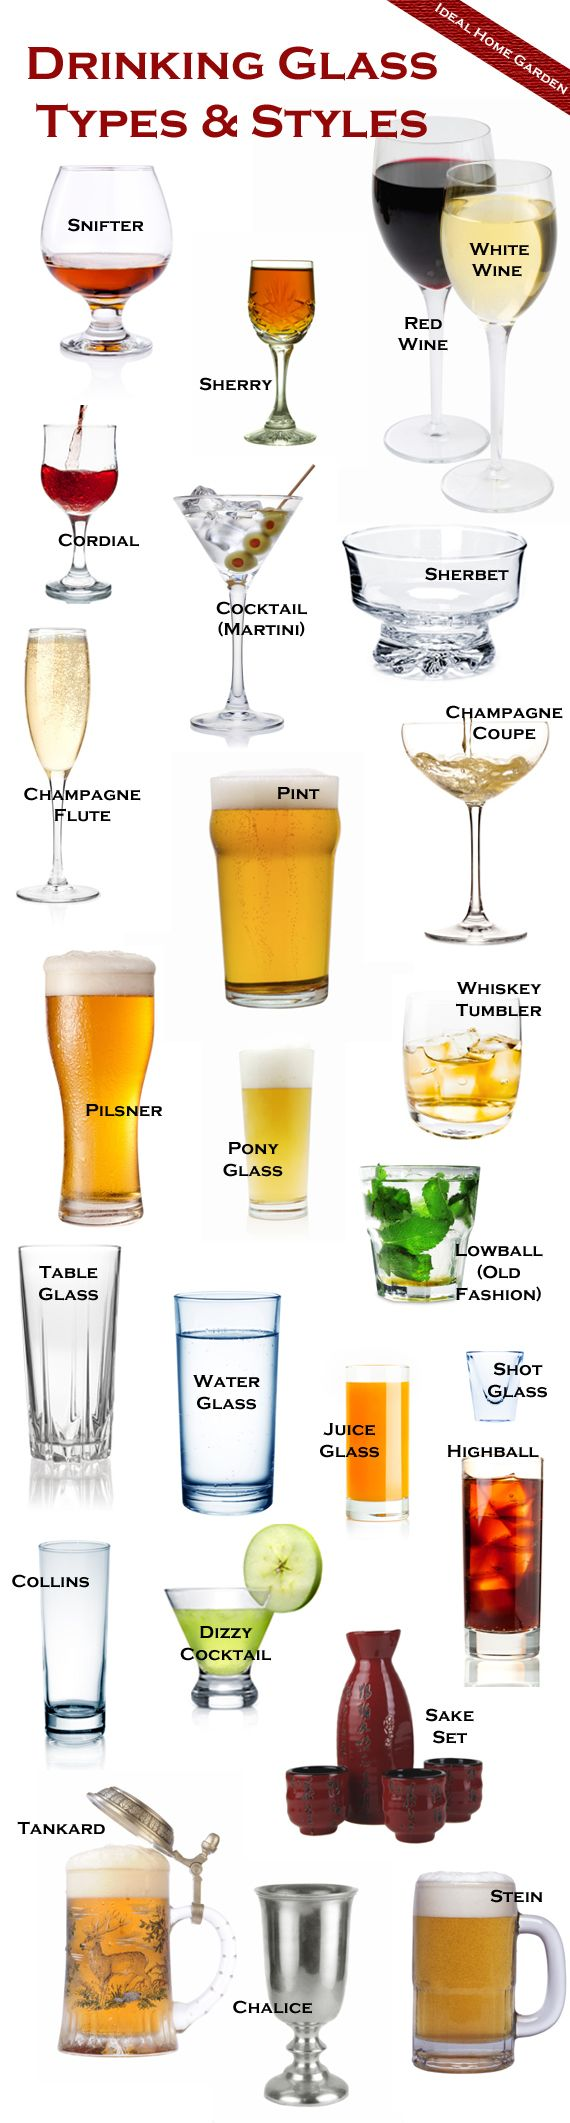 There are four different types of drinkers — which one are you?